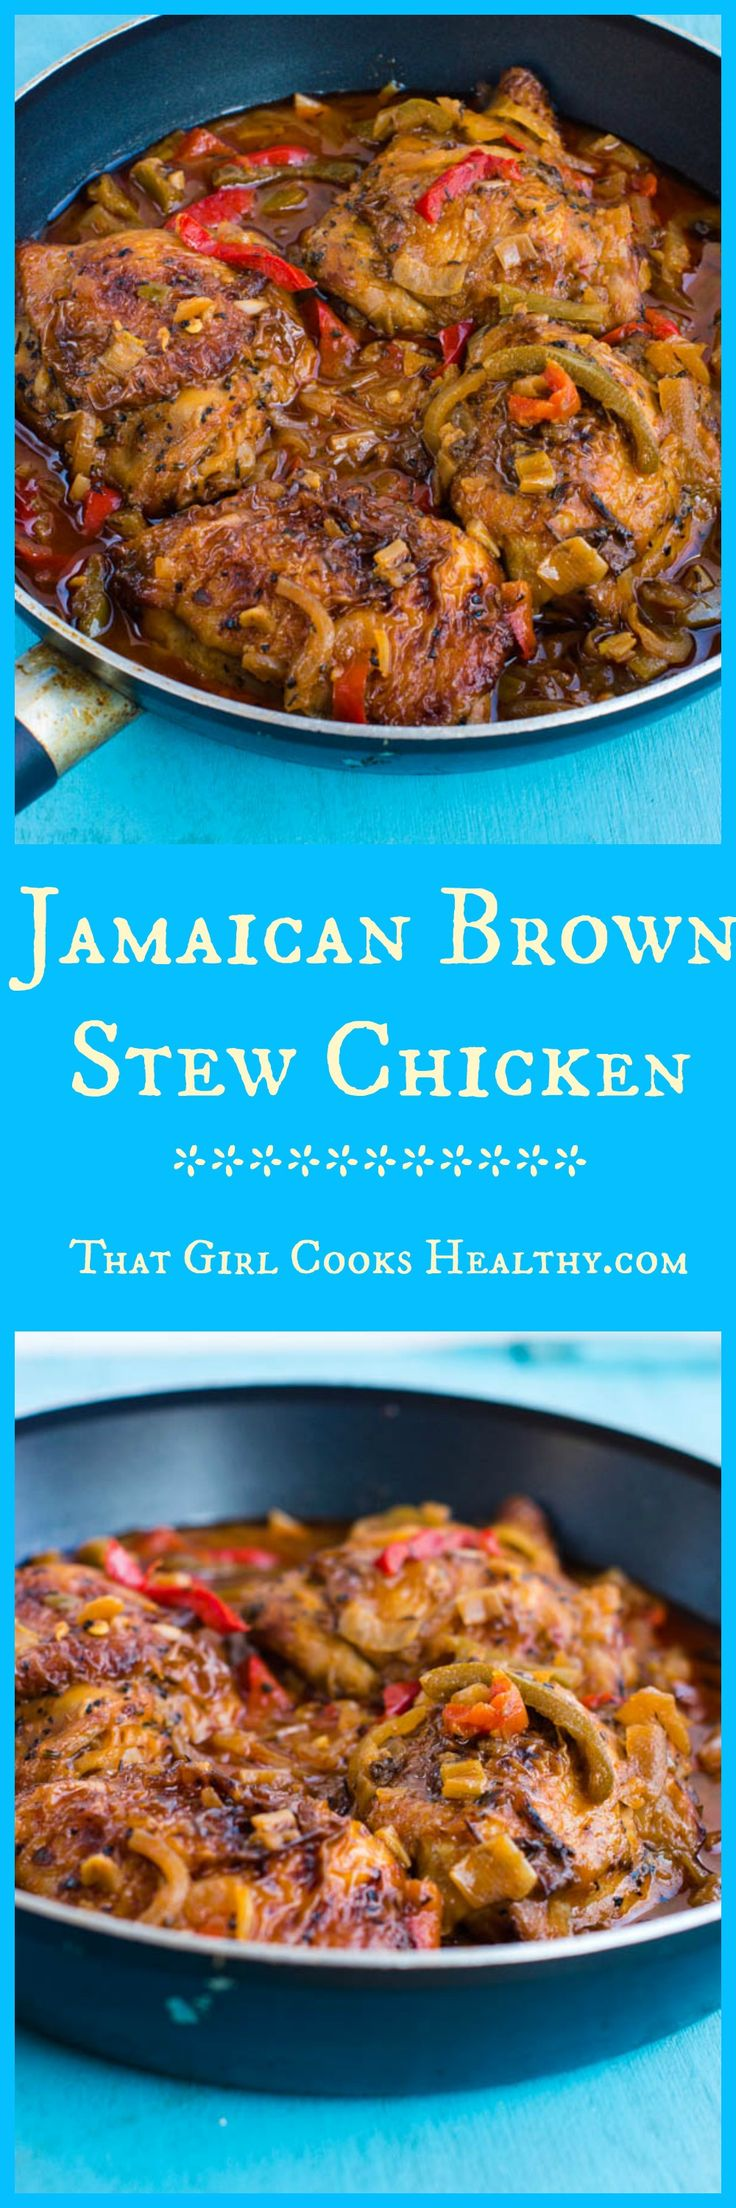 Jamaican brown stew chicken - paleo and gluten free #stew #chicken #caribbean #jamaica #paleo